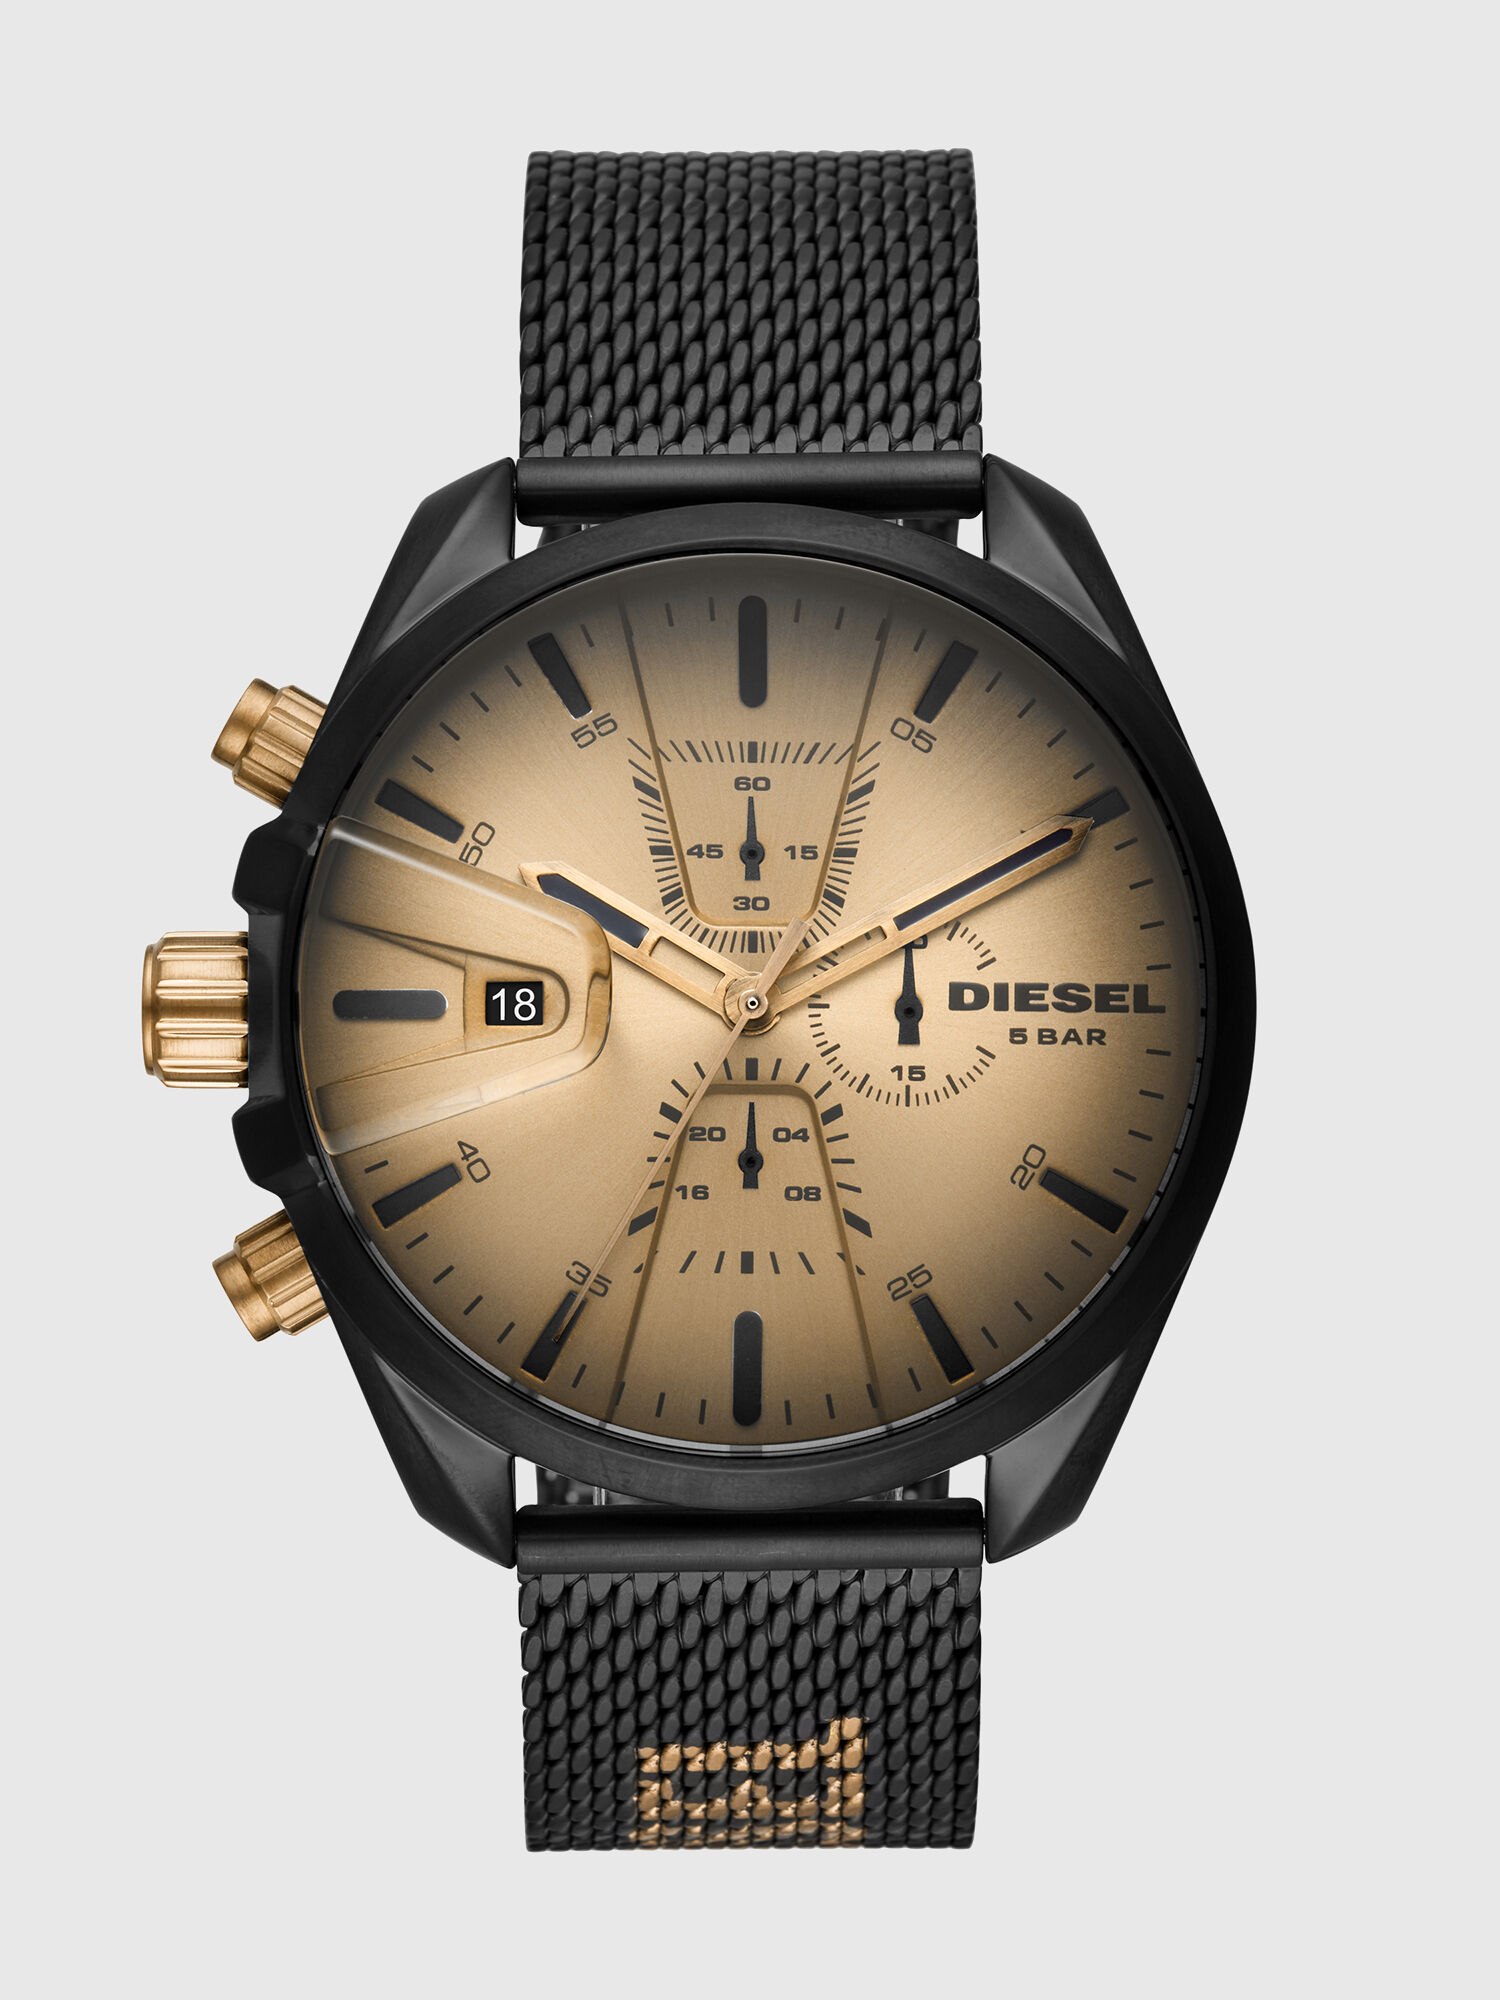 HommeGo Not Montres On Sure With b29YeEWHID